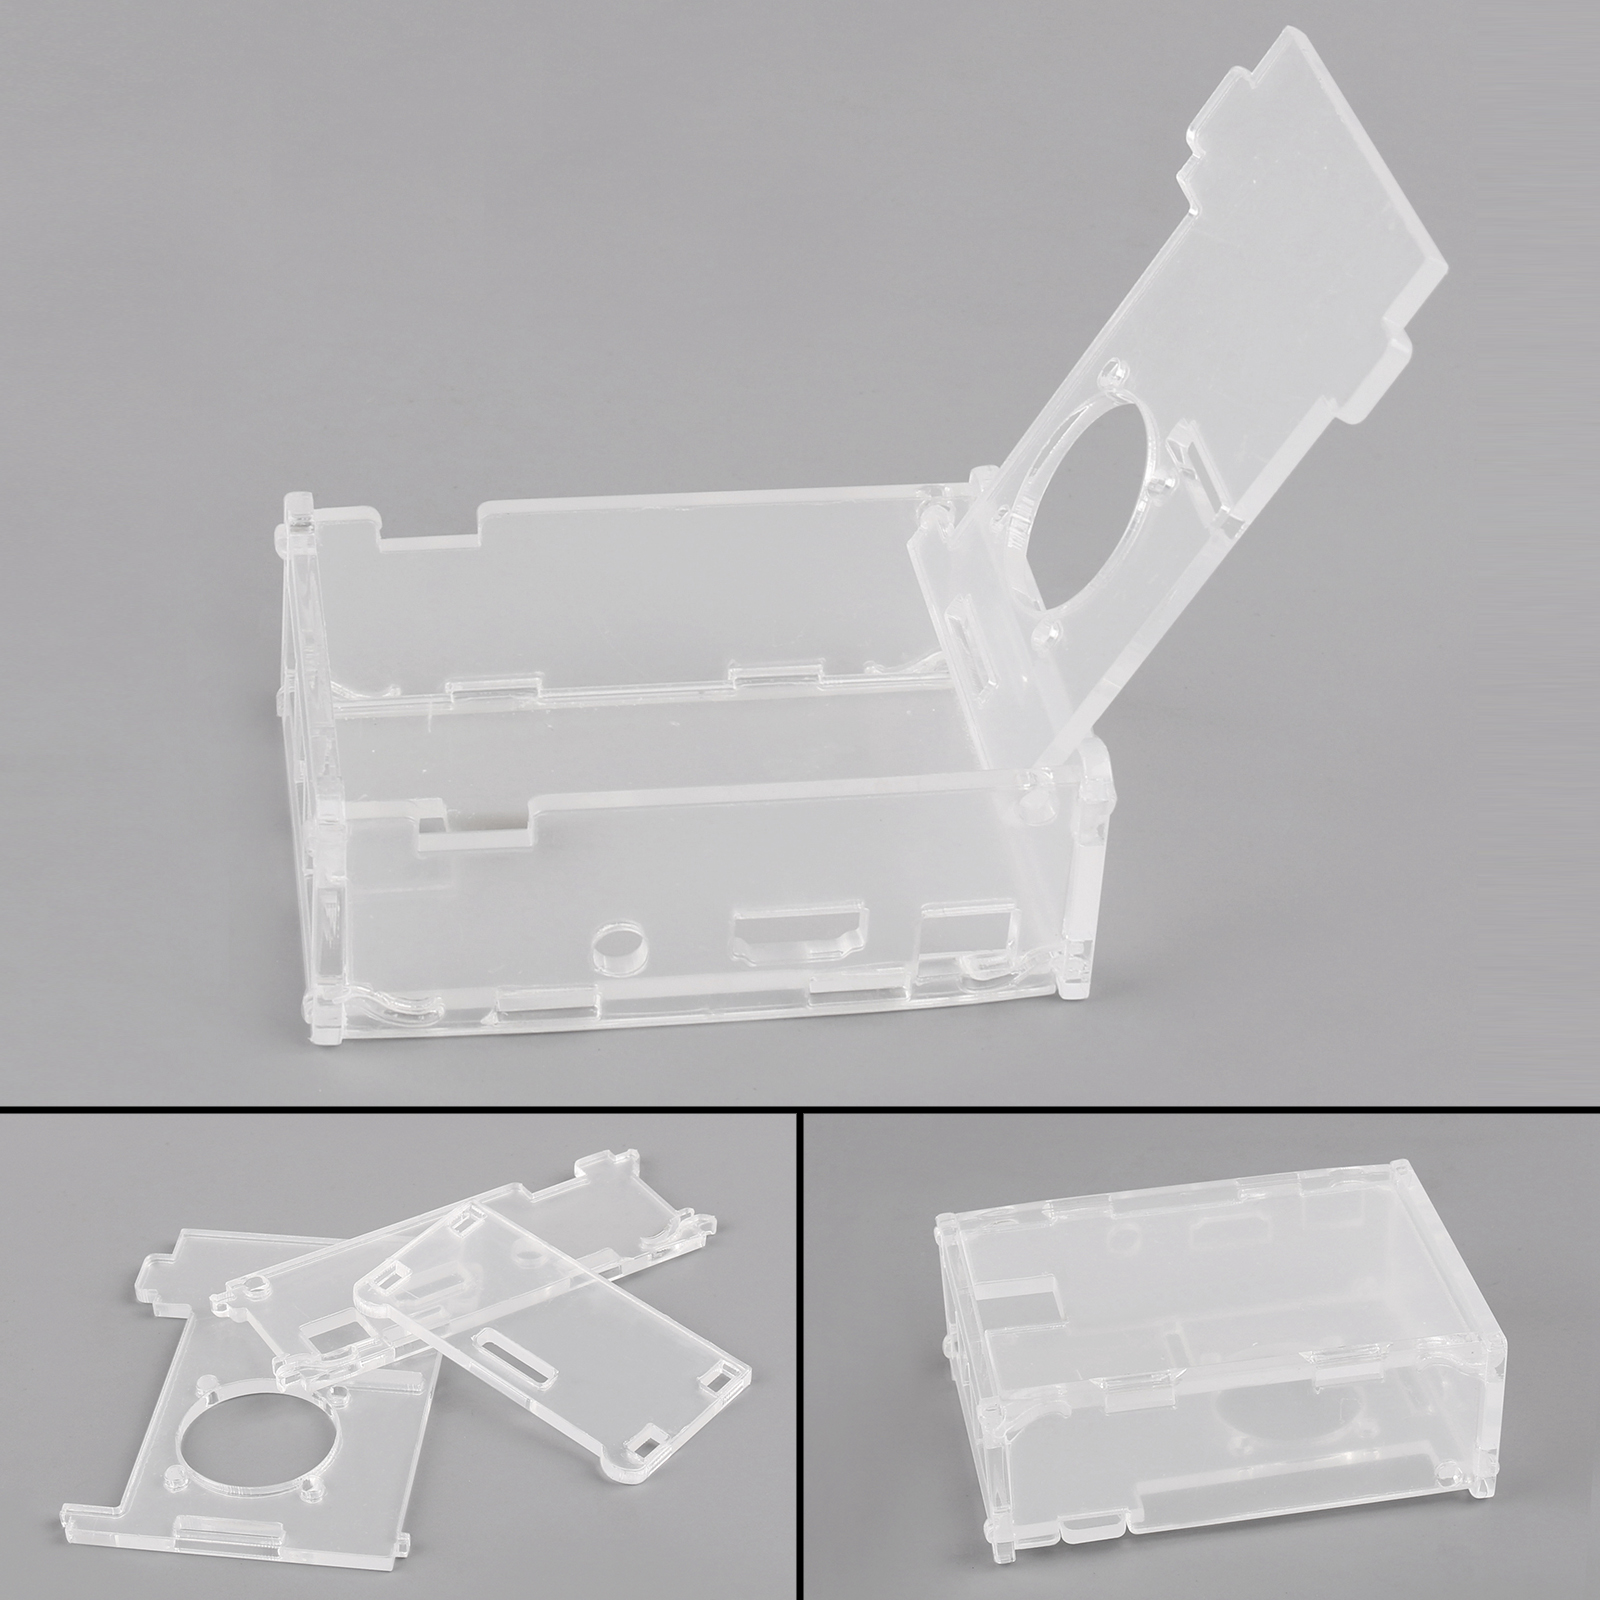 For Raspberry Pi 2 Pi 3 and Model B Transparent Clear Case Box with Cooling Fan